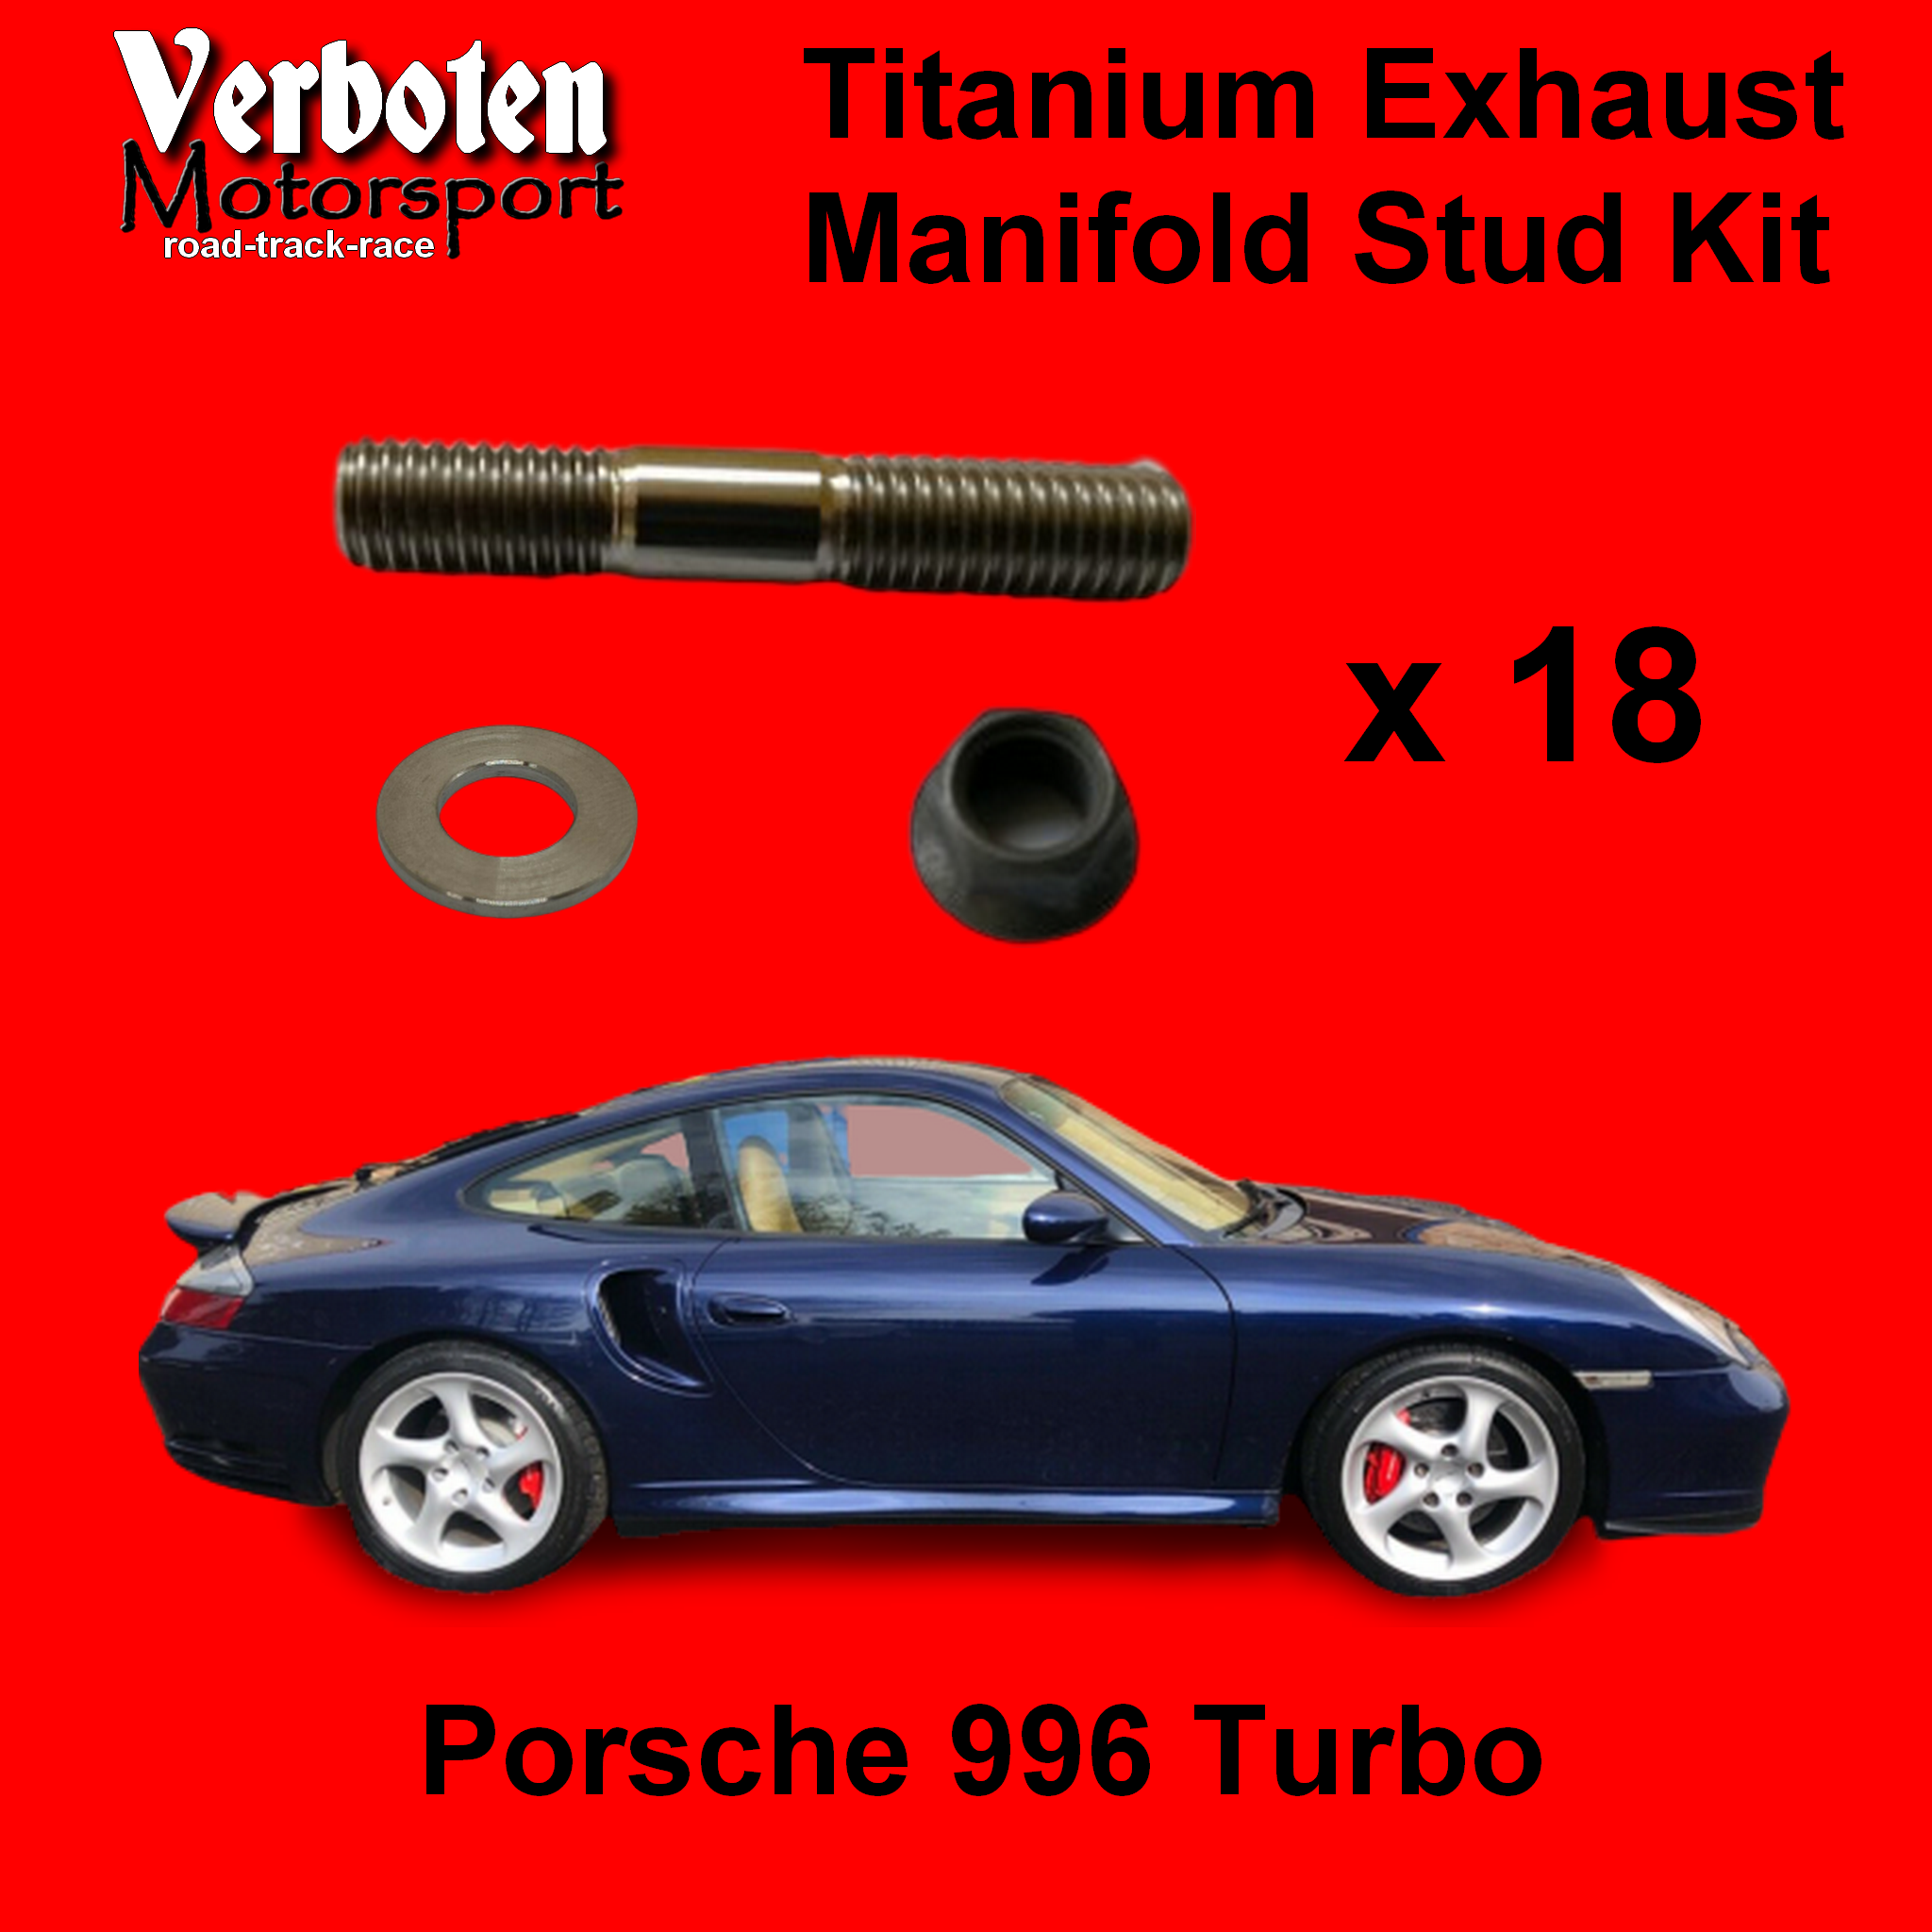 Porsche 996 Turbo Titanium Exhaust Stud Kit